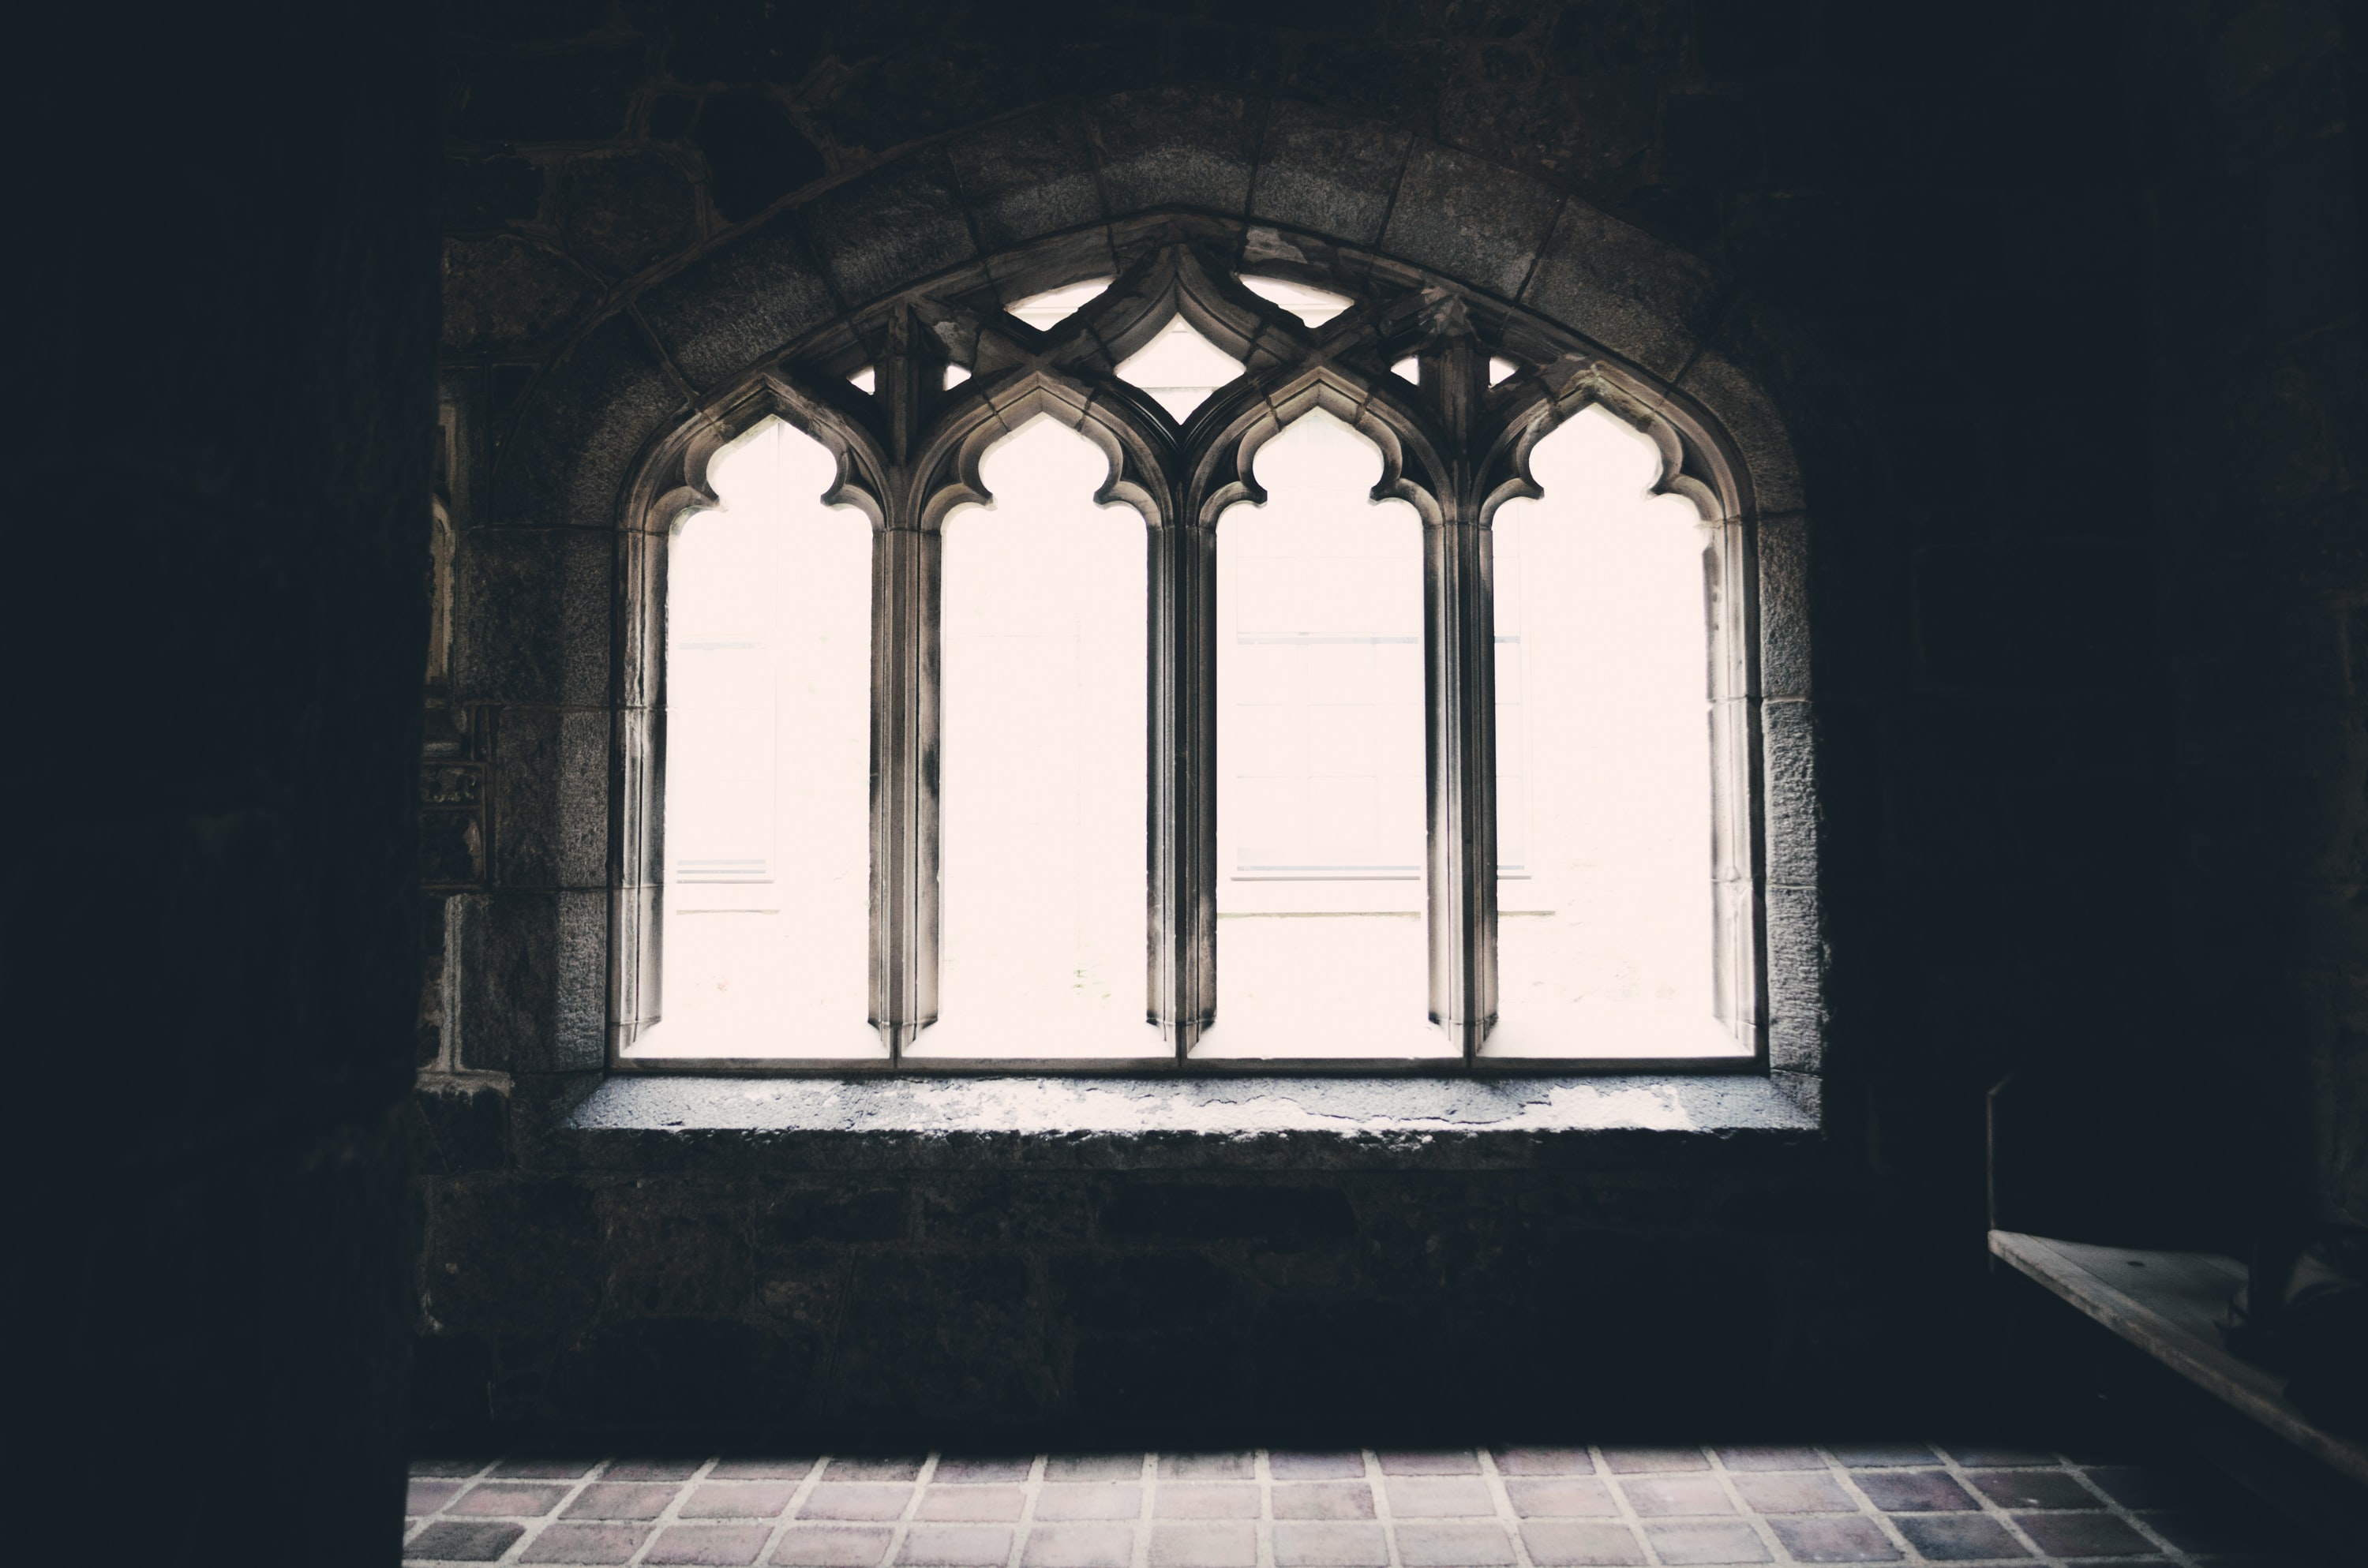 A darkened picture capturing a window inside of a church.